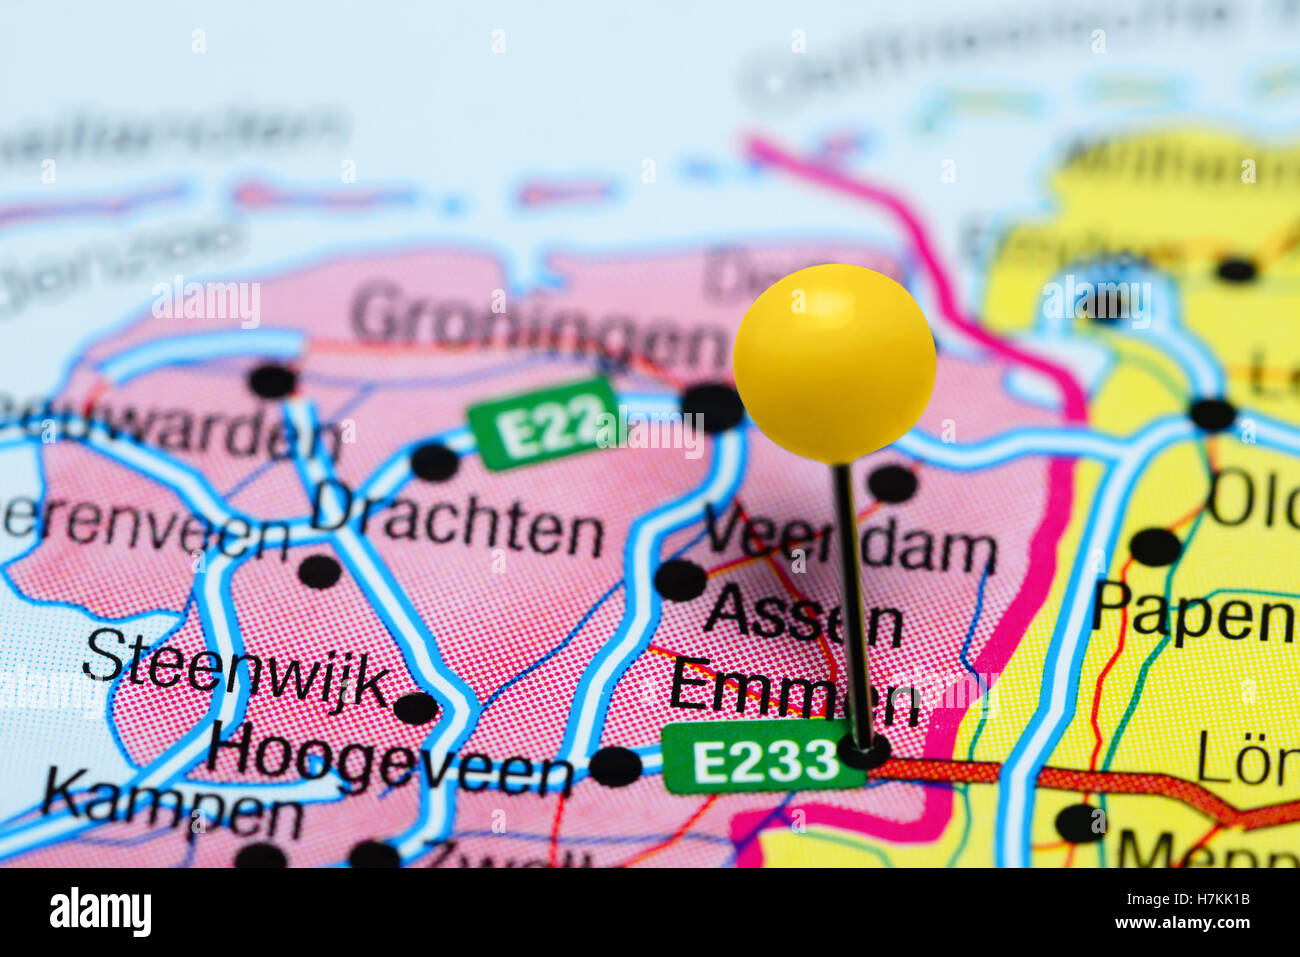 Emmen pinned on a map of Netherlands Stock Photo 125207191 Alamy